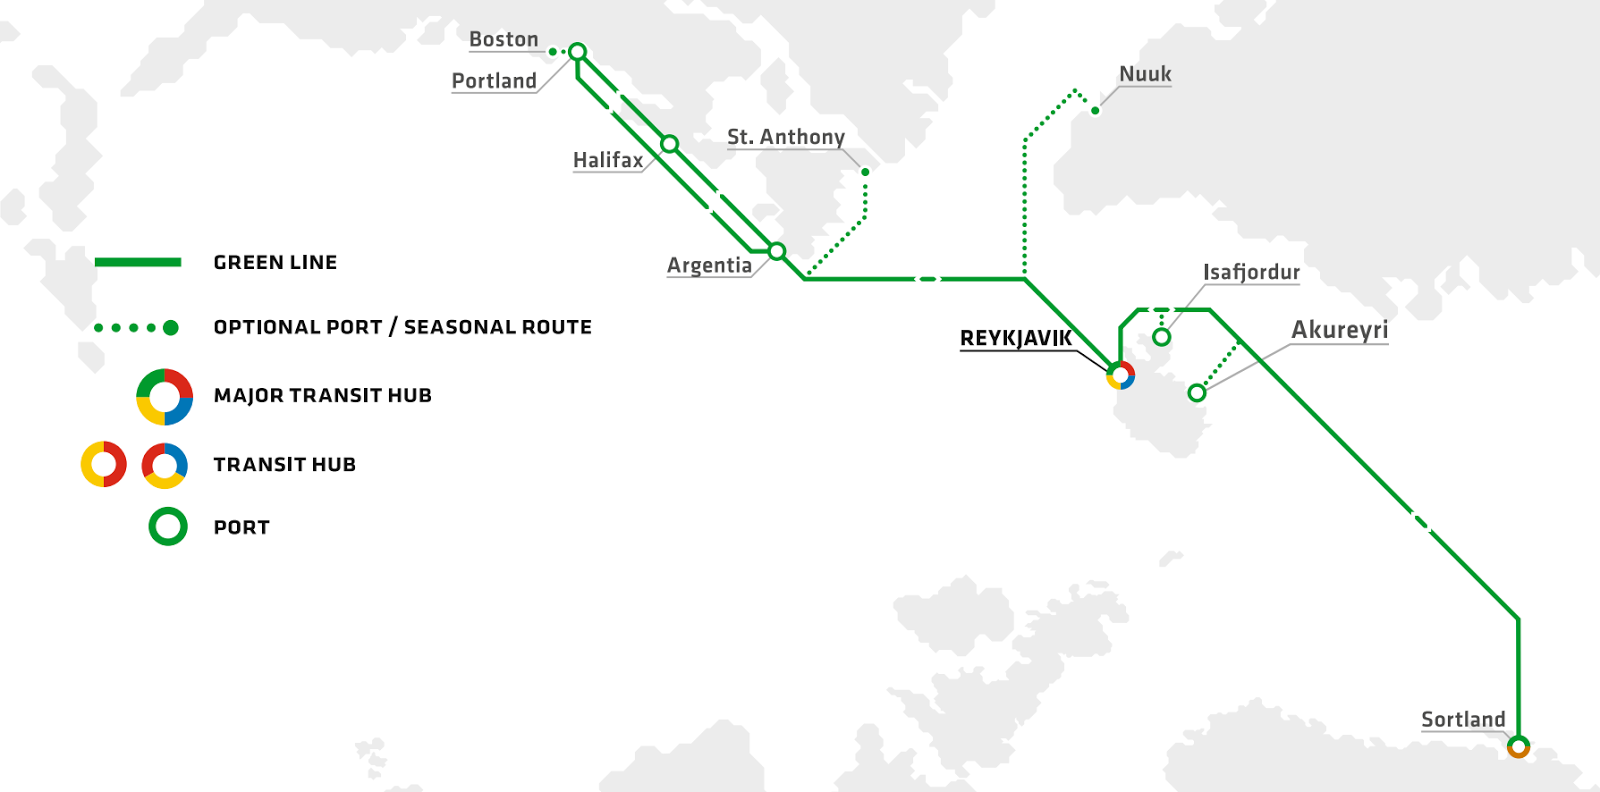 MAP: Eimskip's Green Line shipping route connects Maine to Iceland in just nine days.